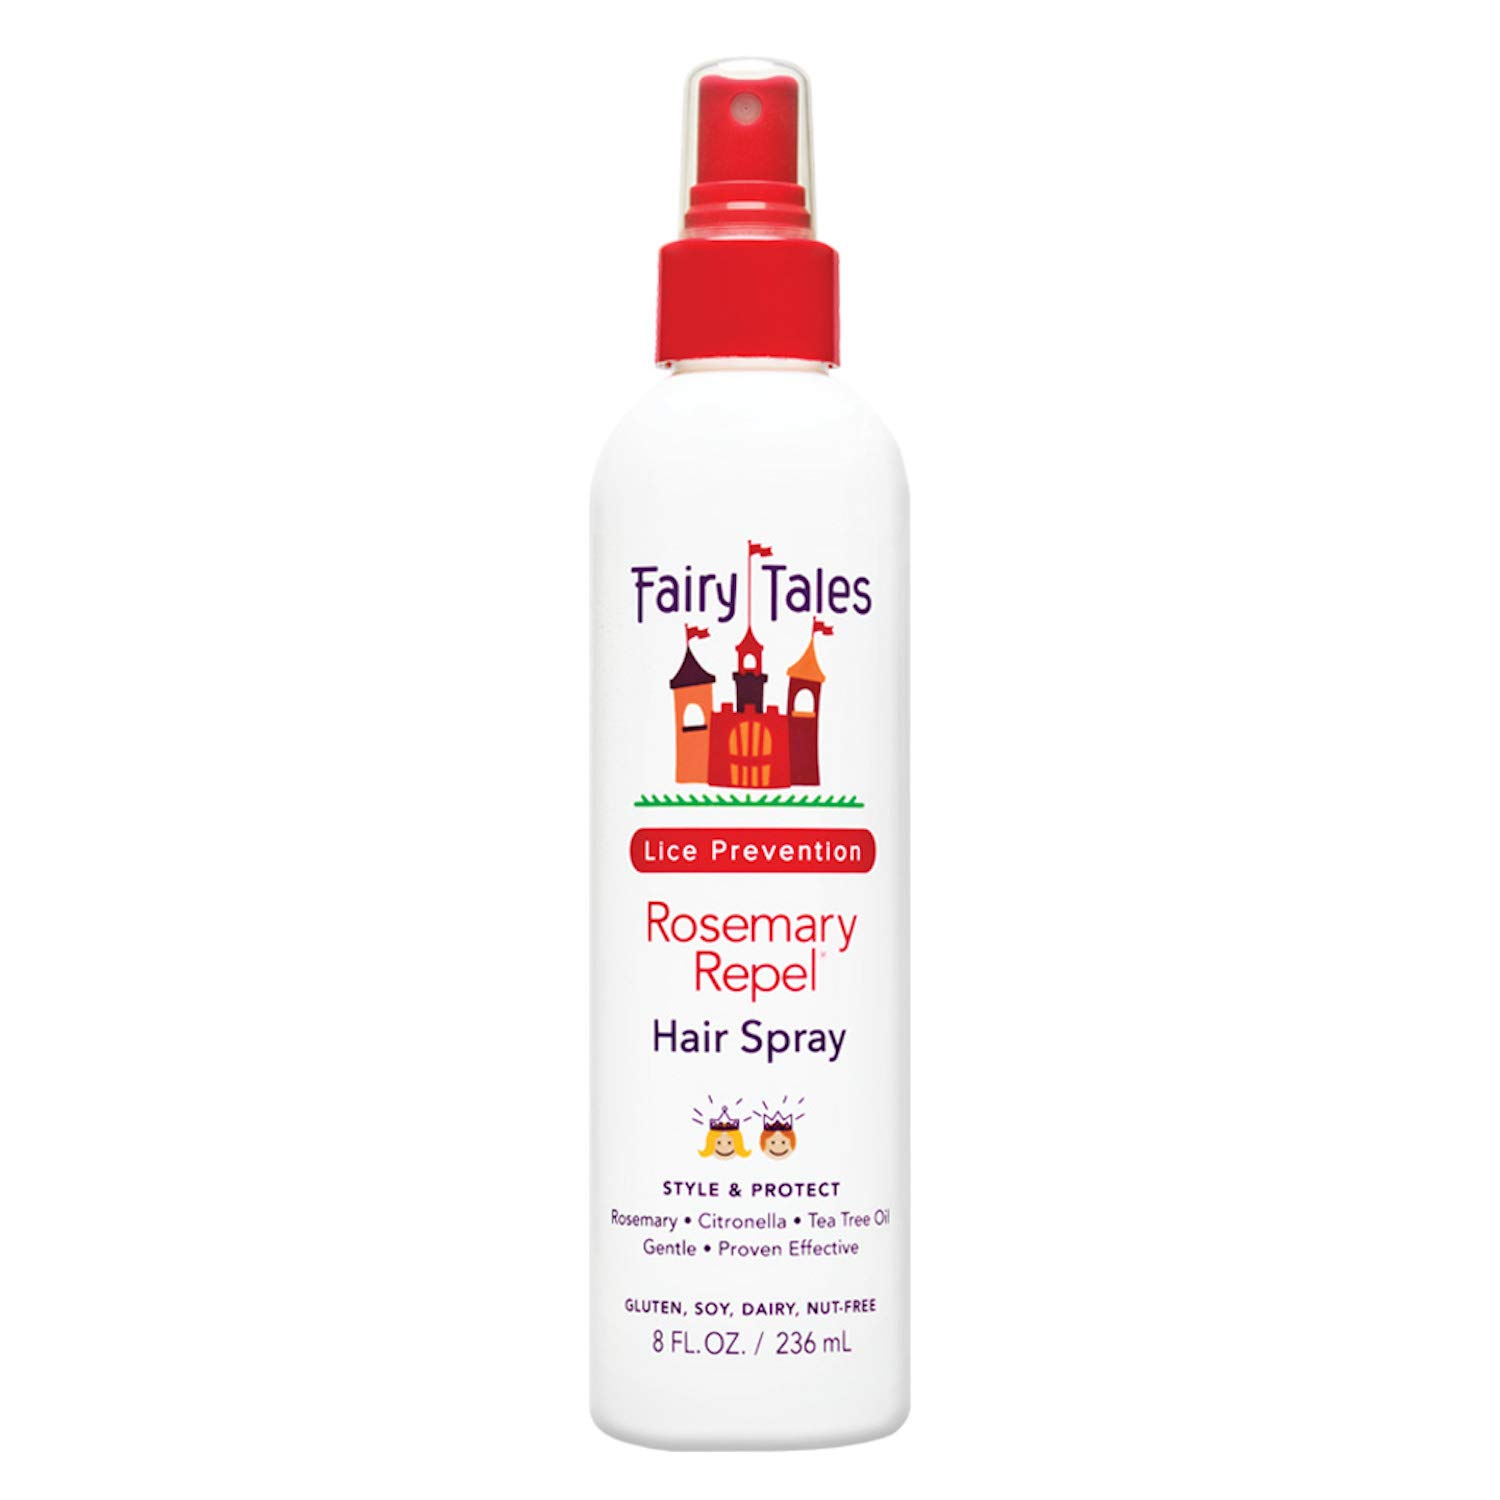 Fairy Tales Rosemary Repel Daily Kid Hair Spray for Lice Prevention - 8 oz